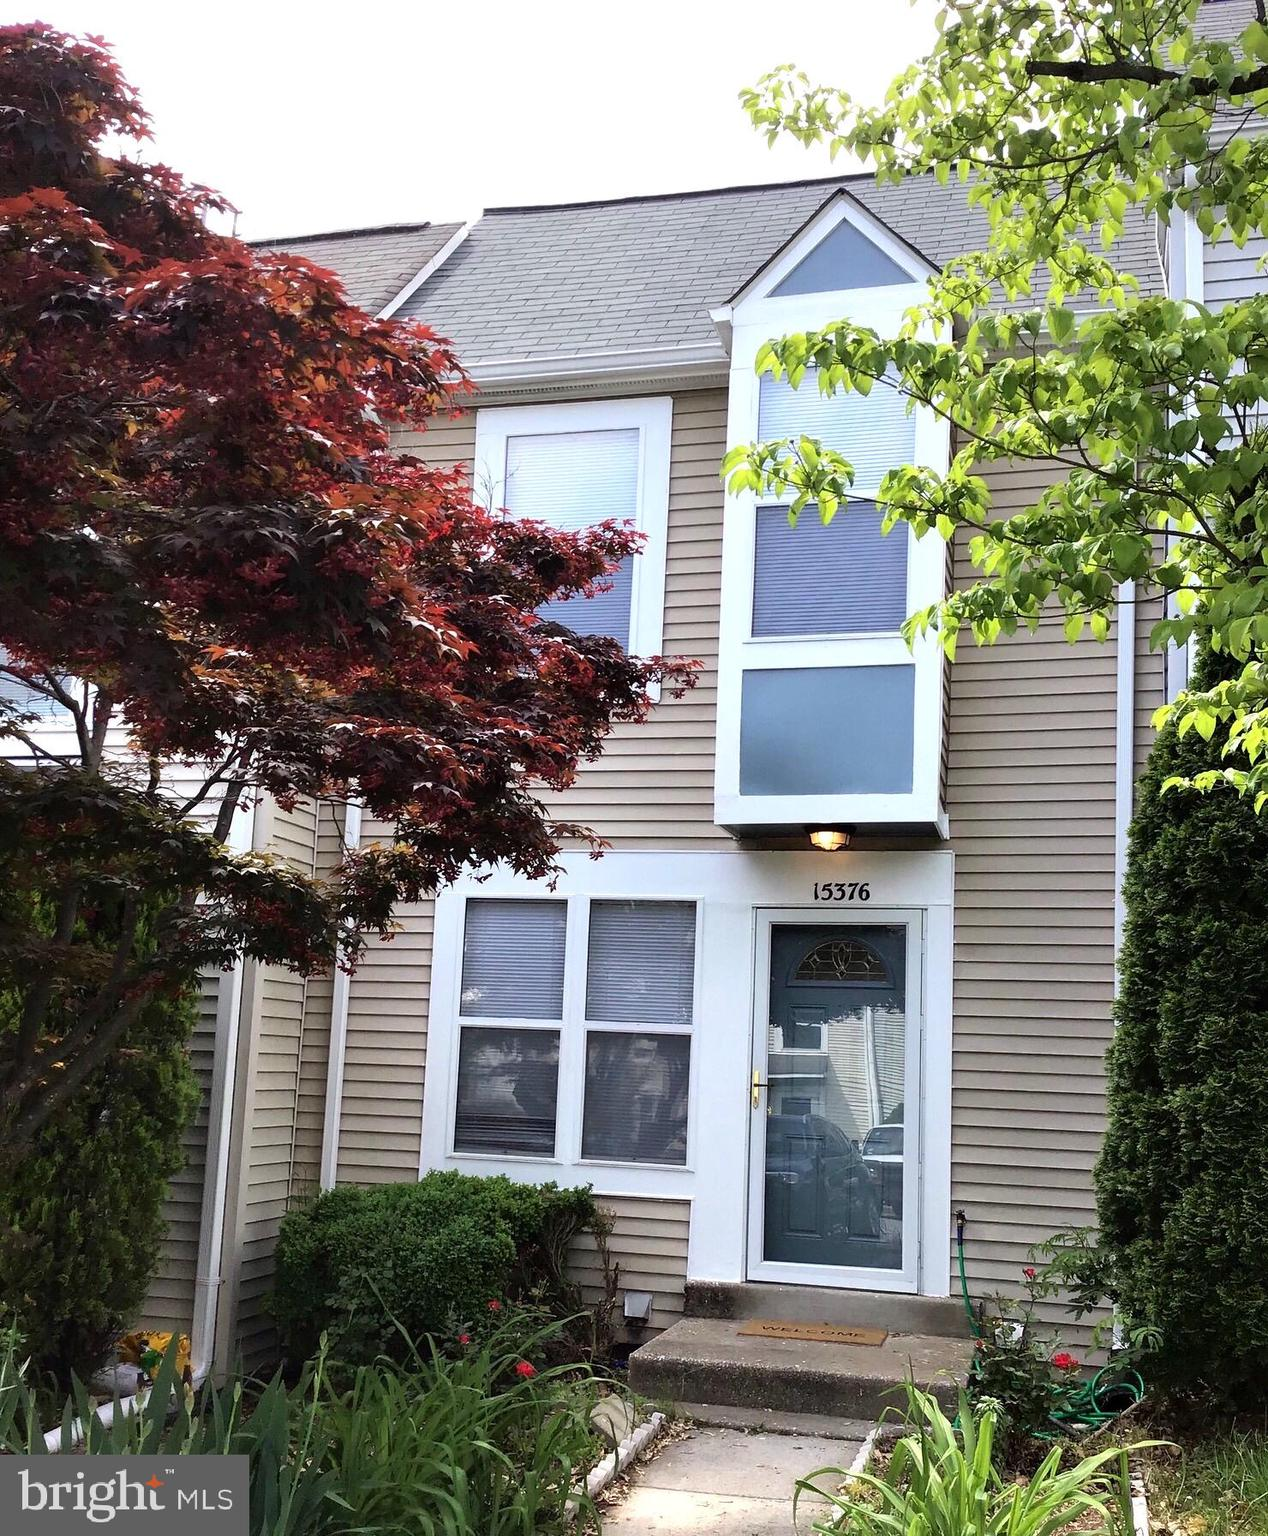 Well maintenance 2 bedroom and 2 full baths townhouse. Features include fresh paint inside and outside, new carpet, new kitchen appliances, laminate floor on the main level. new roof and gutters installed in  2018. Washer and dryer bought in 2018. Wonderful community with swimming pool and playground. Close to shopping center and restaurants.